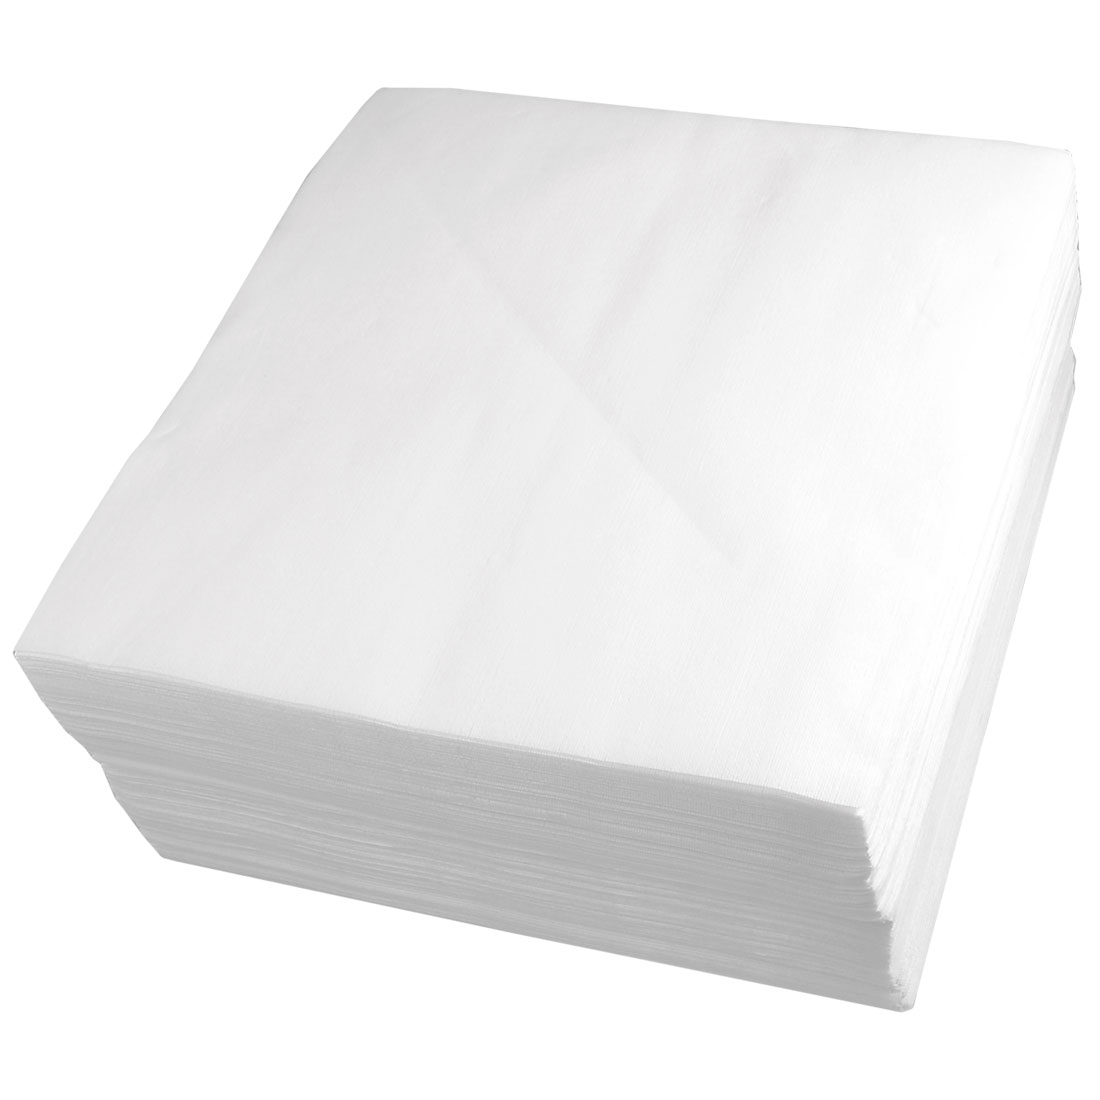 "White 9"" x 9"" Cleanroom Wipers LCD Screen Cleaning Cloth 300 Pcs"